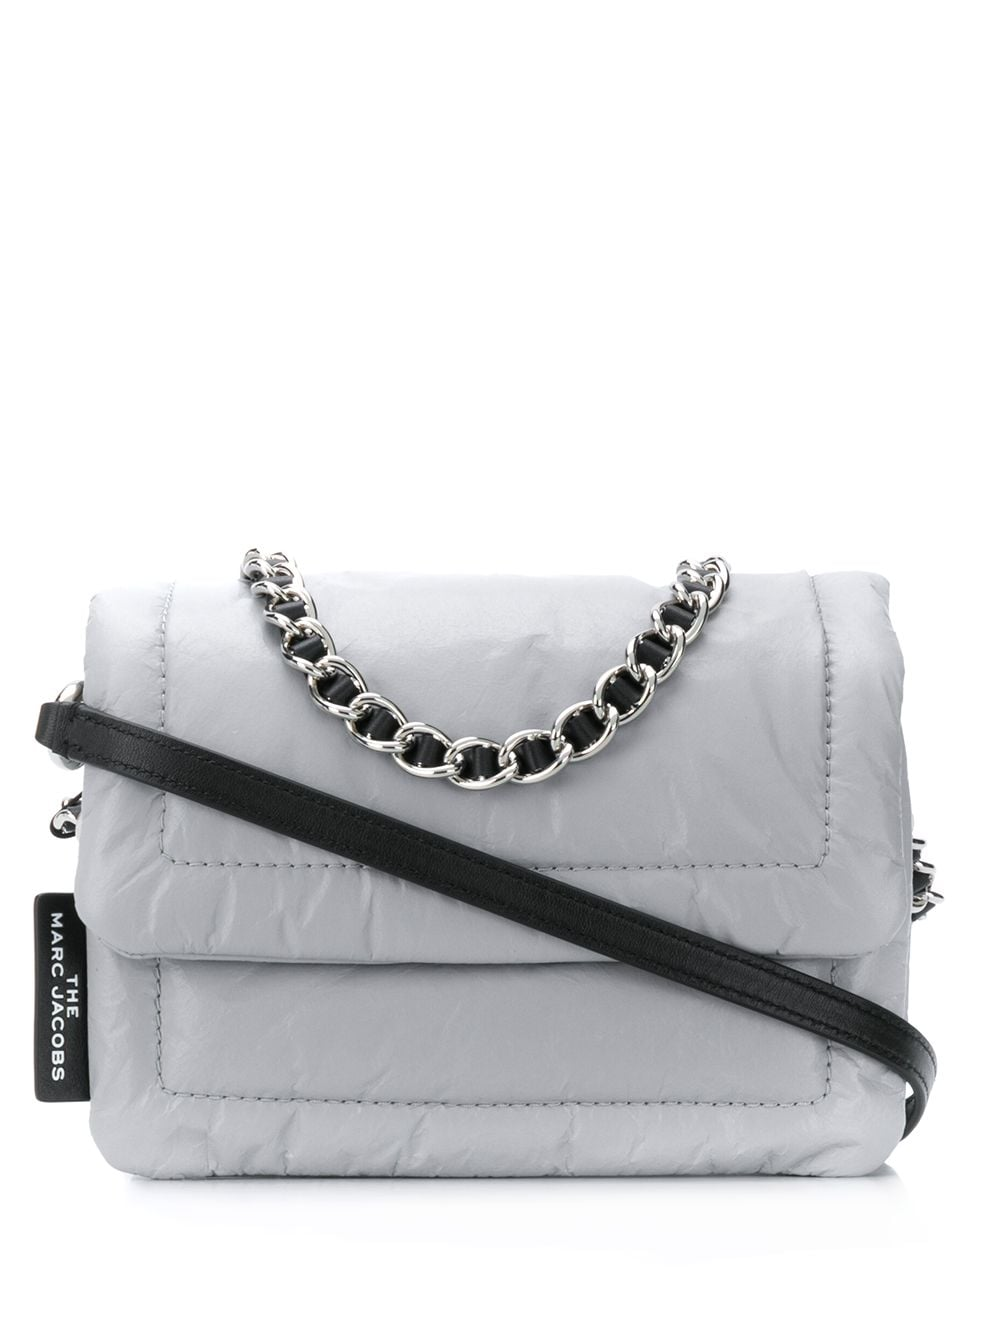 The Mini Pillow Leather Bag